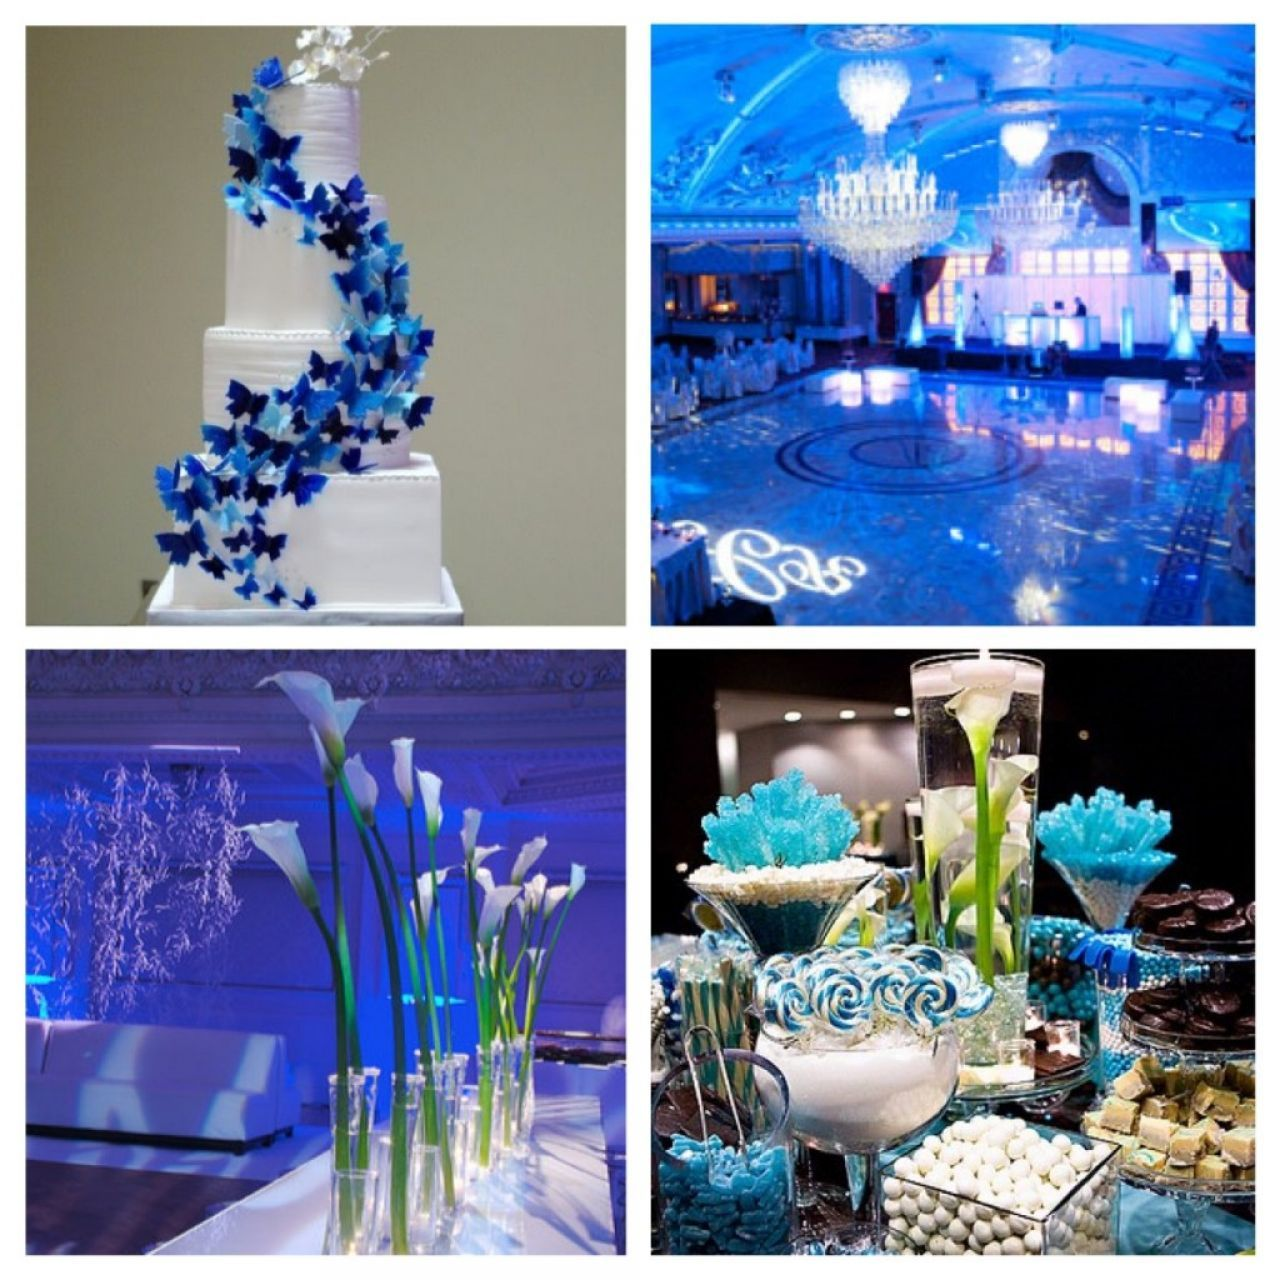 Royal blue wedding centerpieces 14 photos of the royal blue royal blue wedding centerpieces 14 photos of the royal blue wedding decorations theme and ideas junglespirit Images